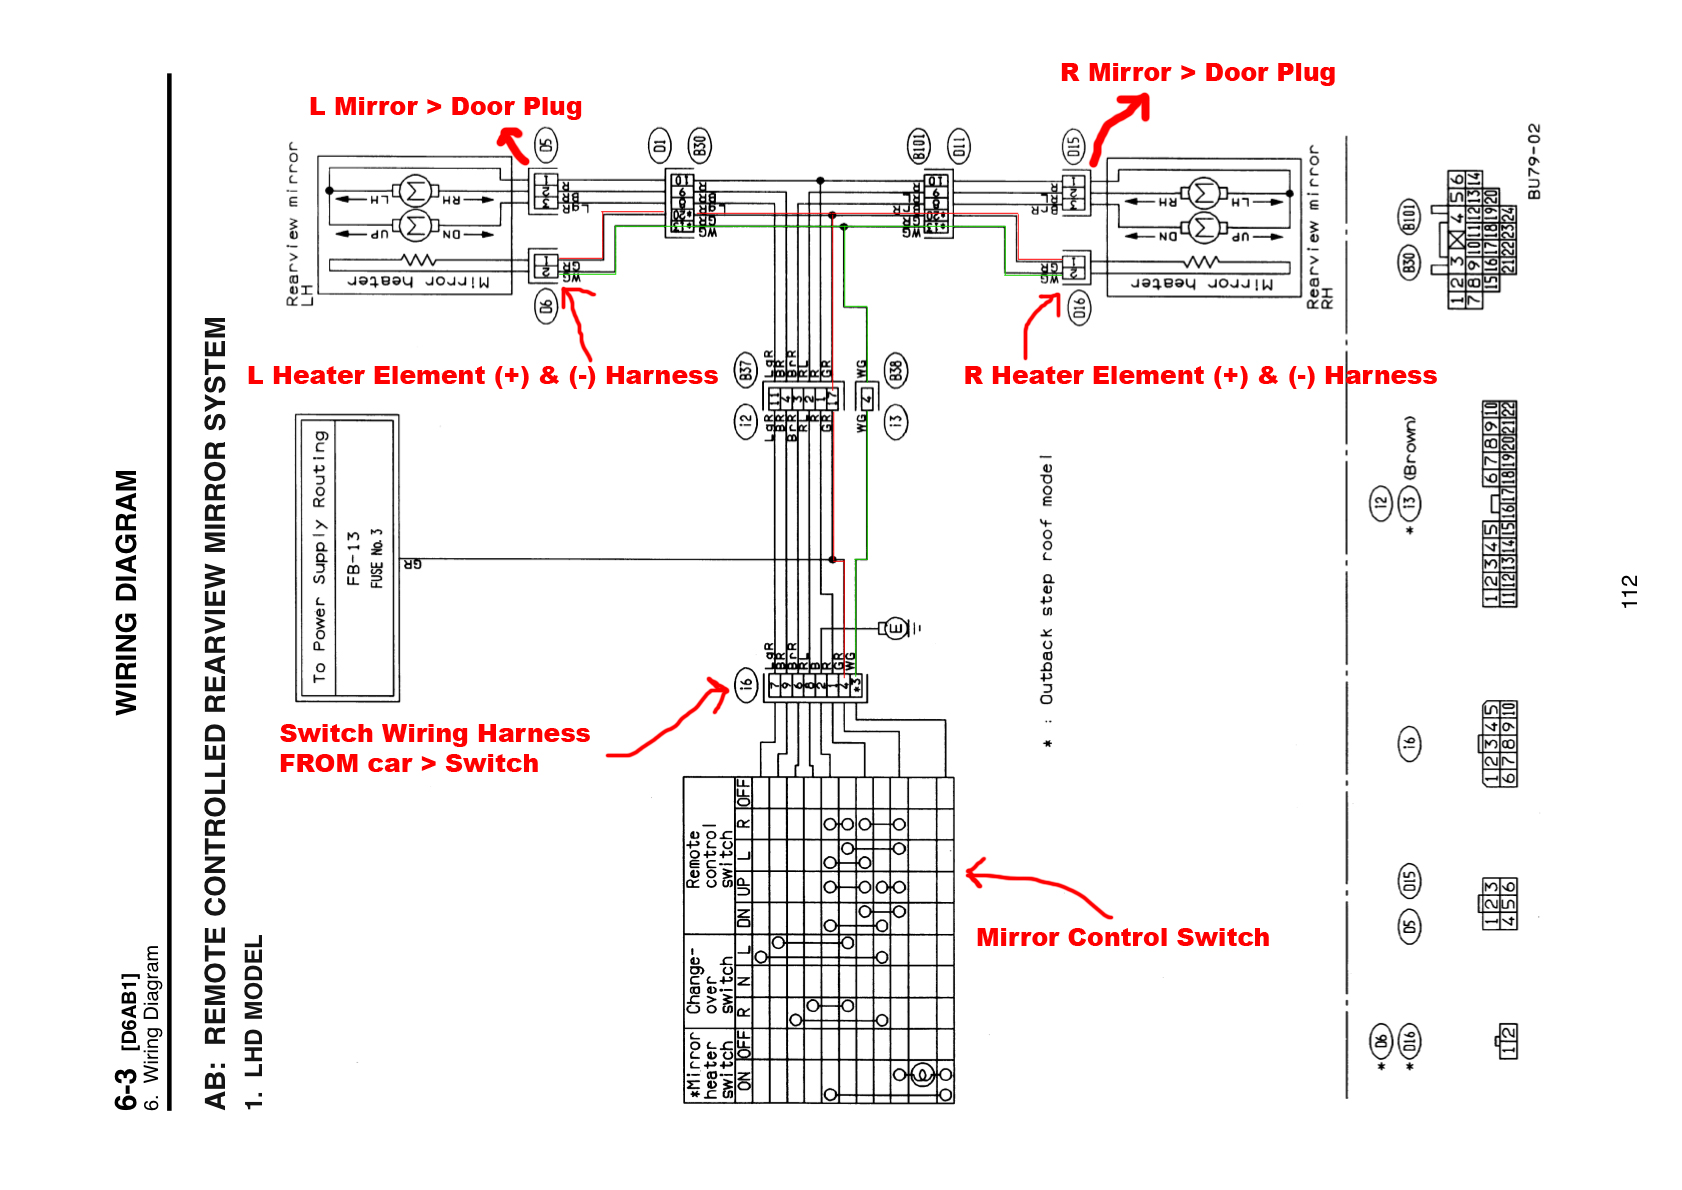 2004 subaru wrx radio wiring diagram 06 ford escape fuse box impreza fog light diagrams